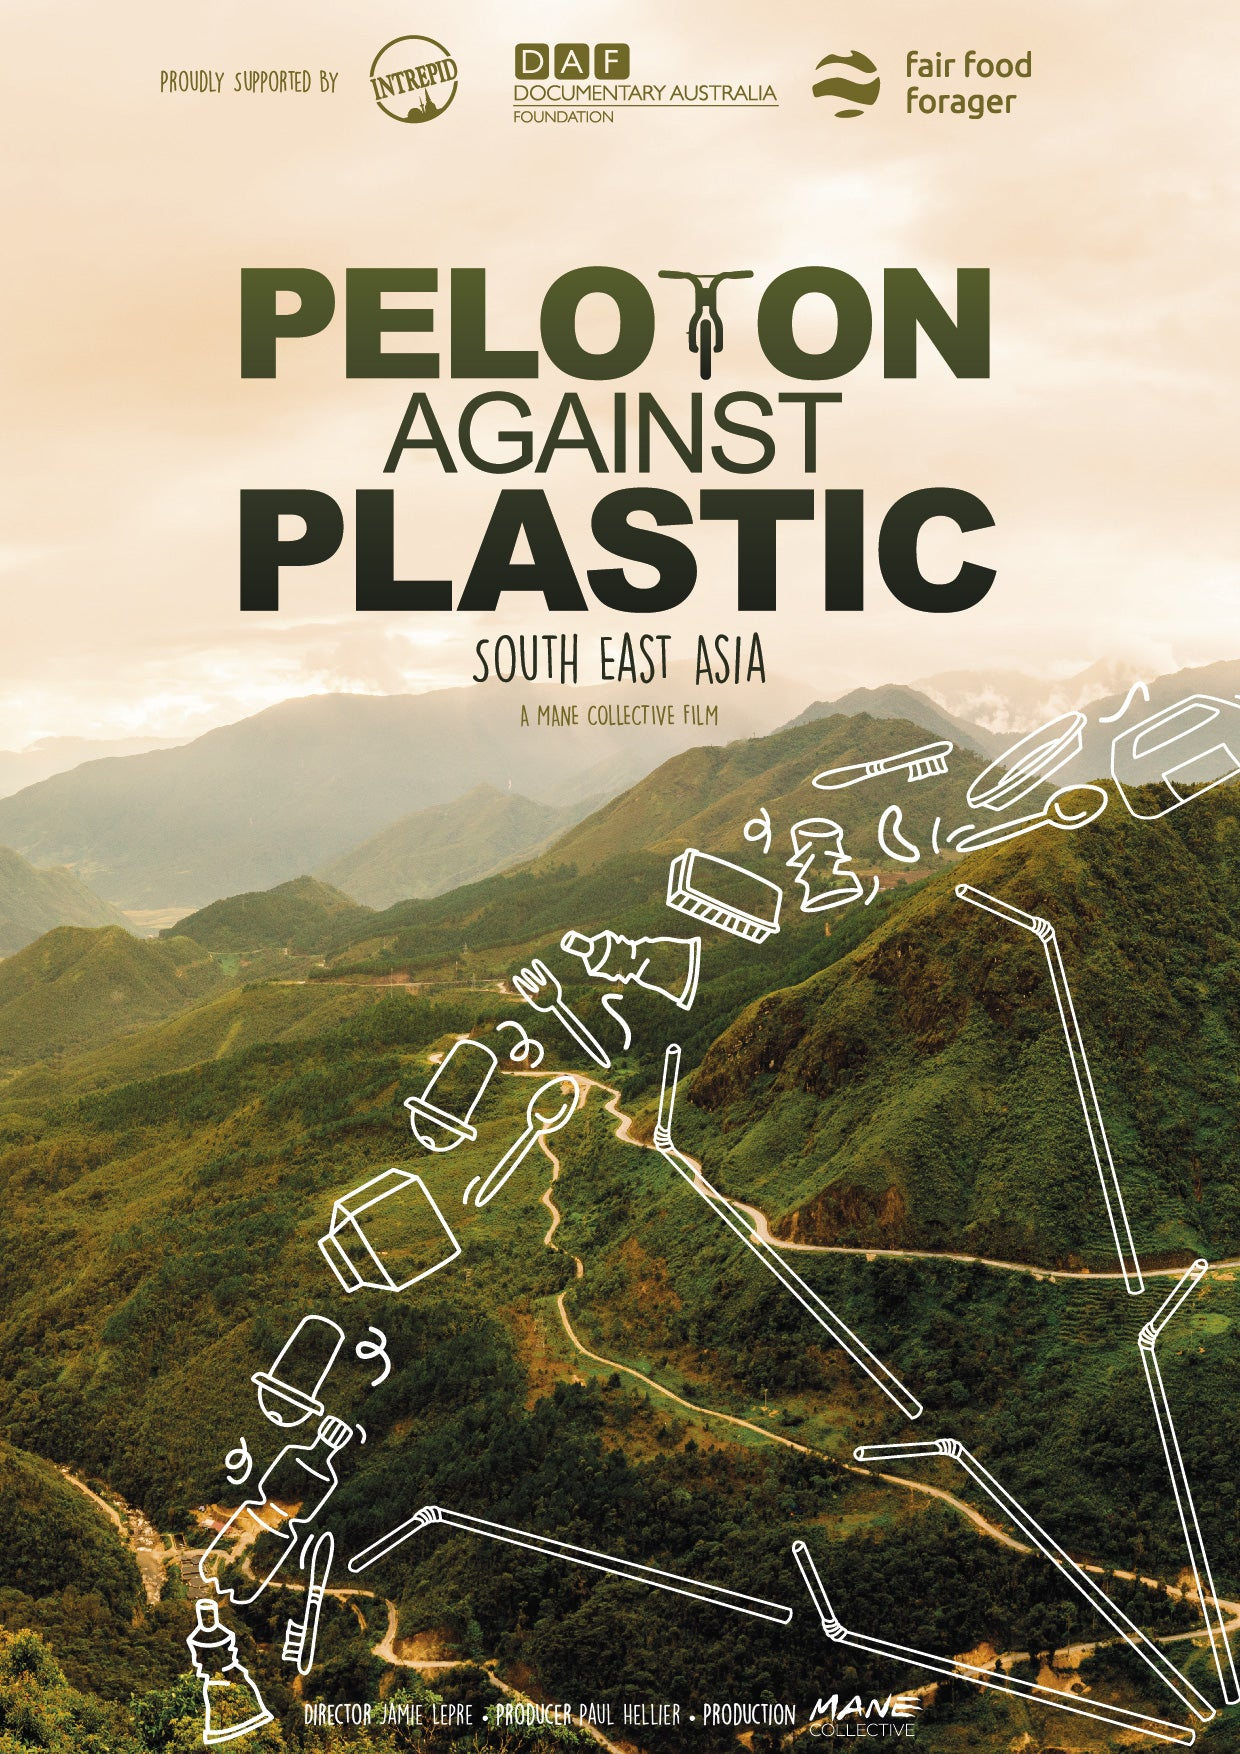 Peloton Against Plastic public screening license